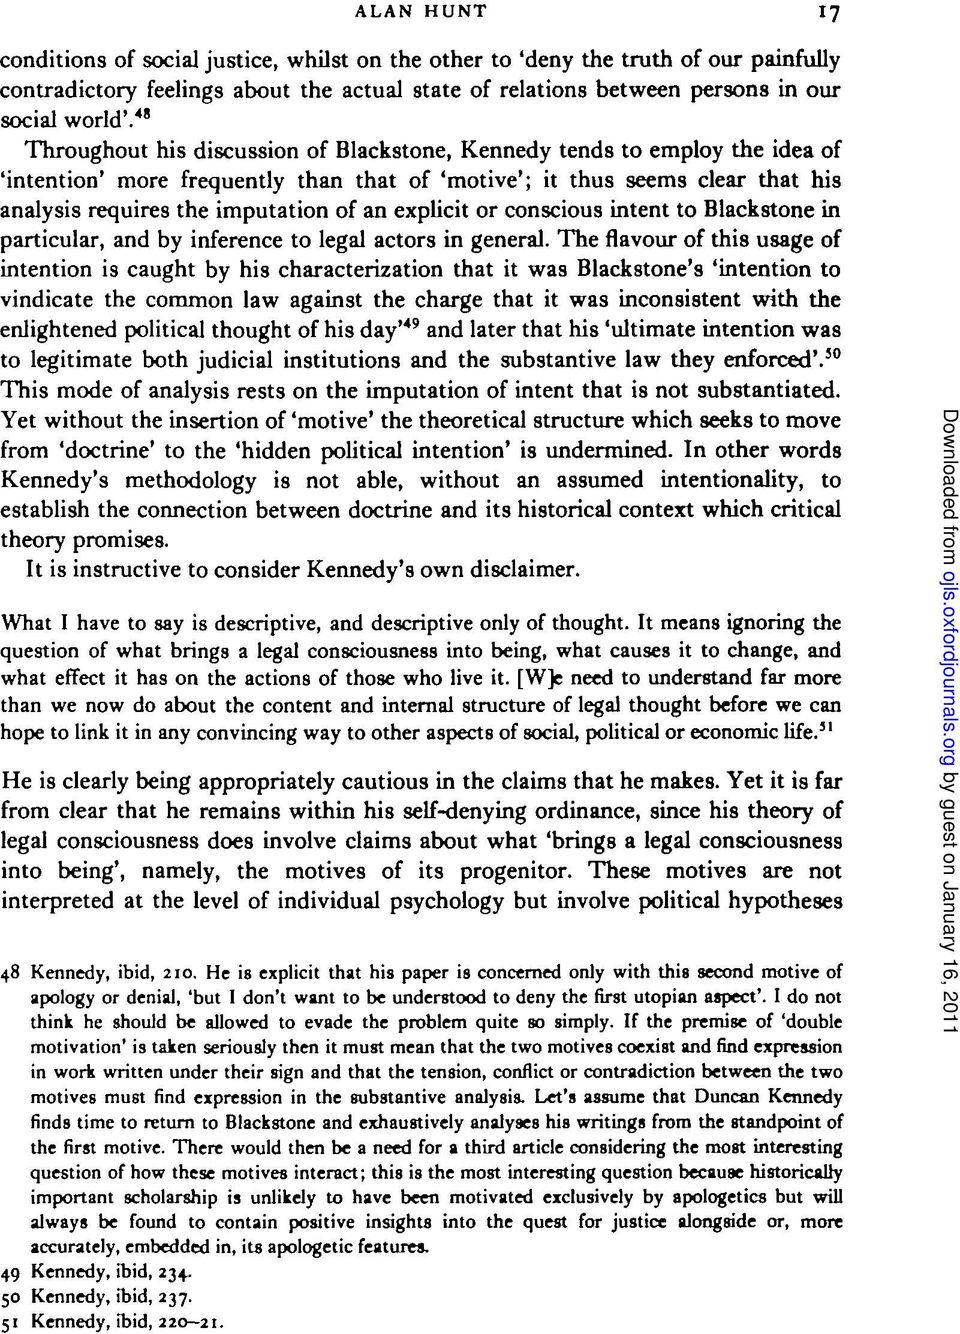 critical legal studies Critical legal studies is a movement in legal thought that applied methods similar to those of critical theory (the frankfurt school) and deconstruction to law the abbreviations cls and crit are sometimes used to refer to the movement and its adherents.